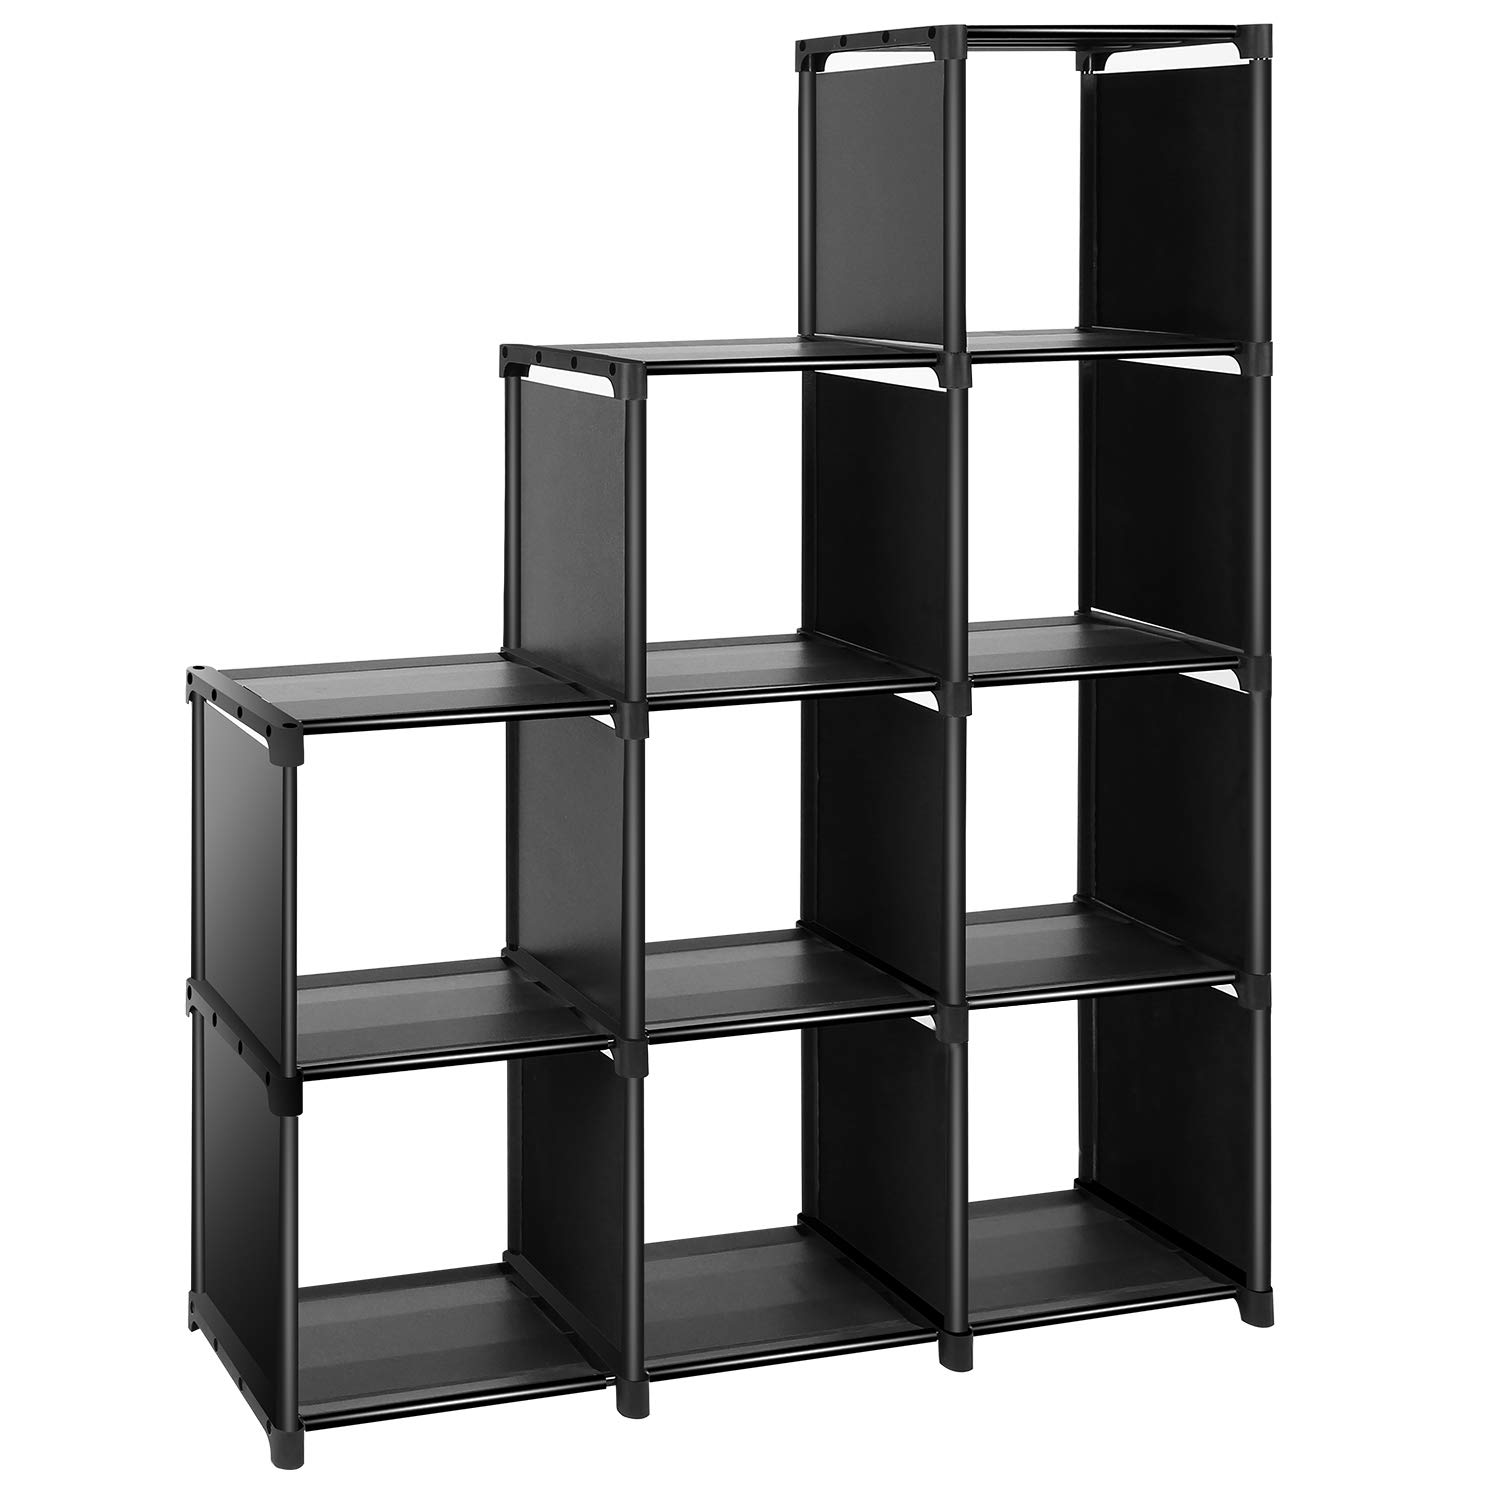 TomCare Cube Storage 9-Cube Closet Organizer Cube Organizer Storage Shelves Bookcase Bookshelf Clothes Cabinets Storage Cubes Bins Cubbies Shelving for Bedroom Living Room Office, Black